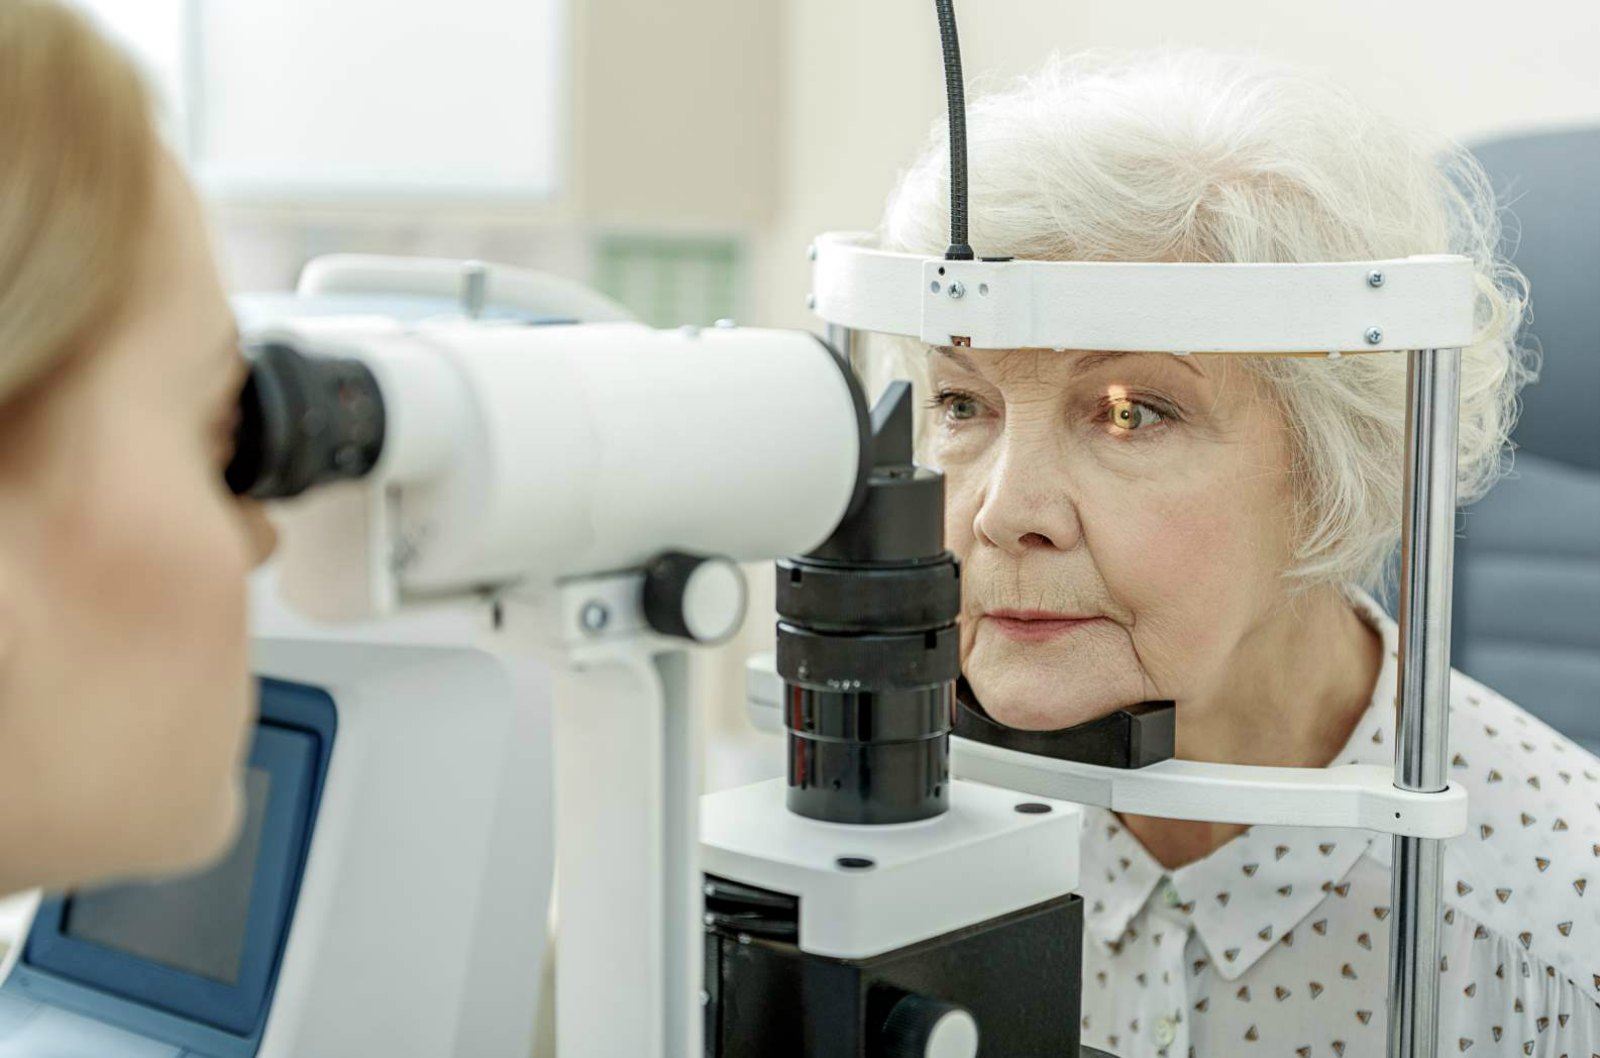 Surgical Tool Reduces the Effects of Glaucoma